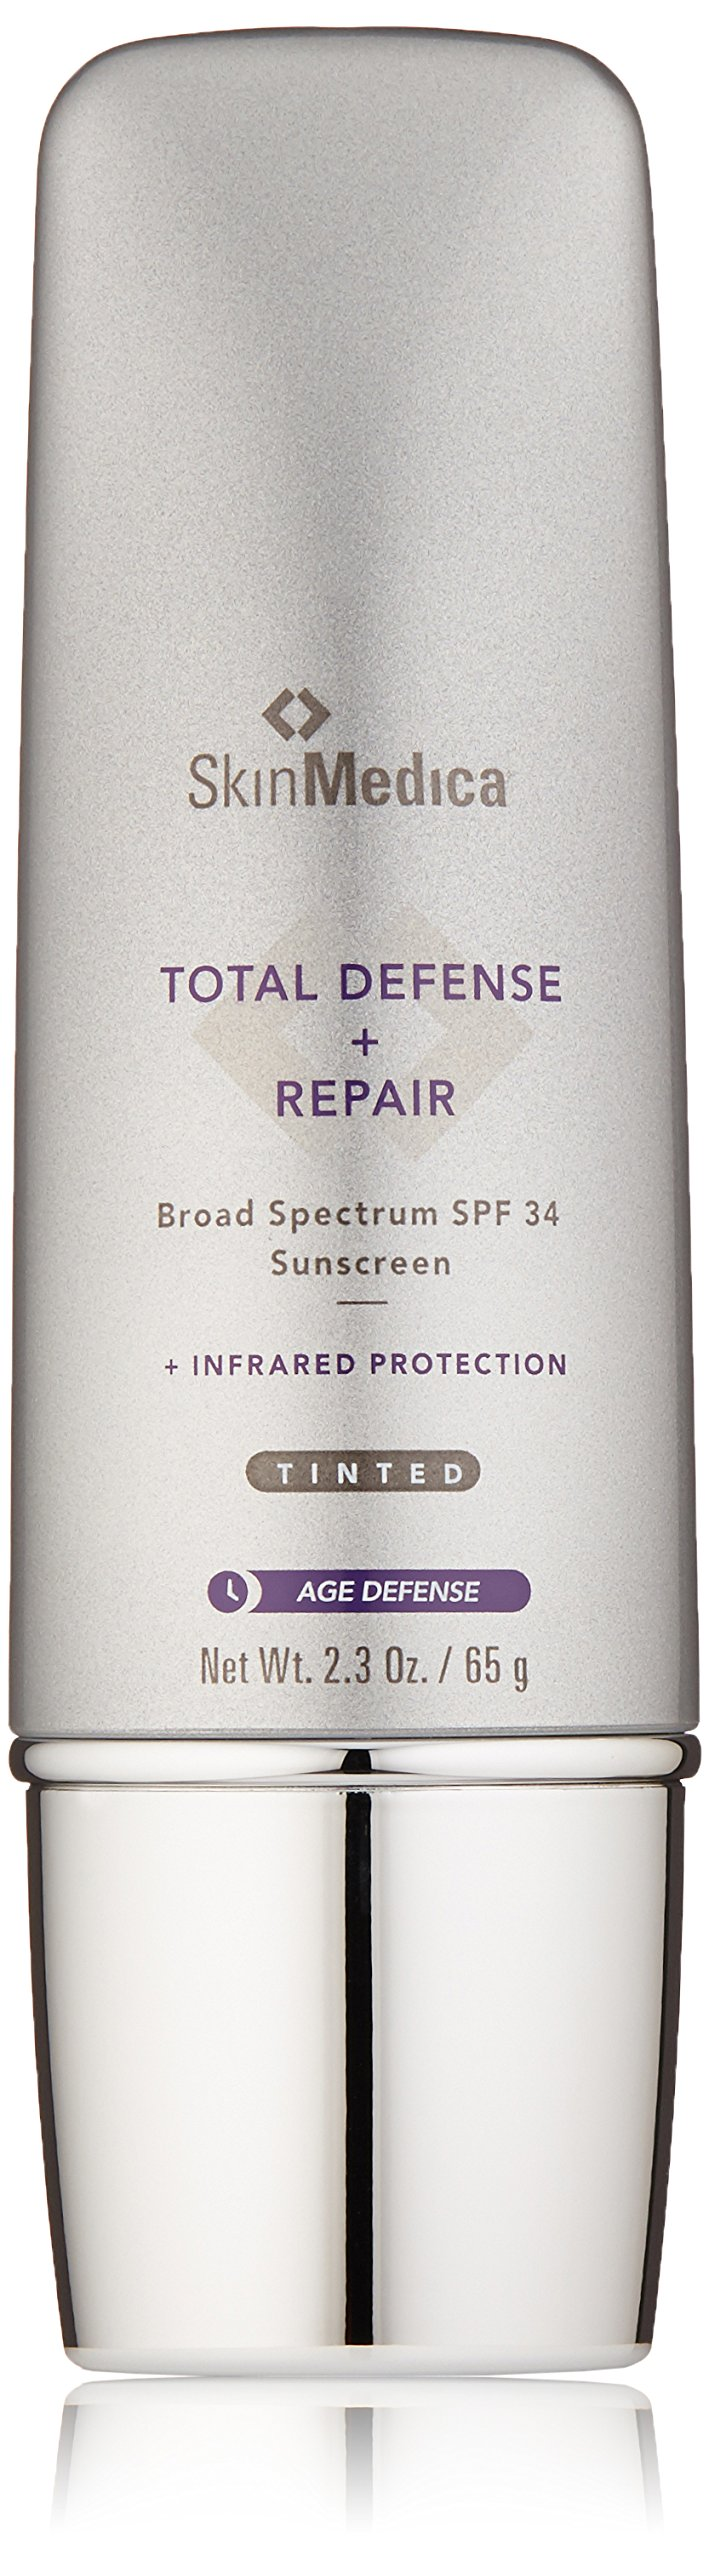 SkinMedica Total Defense Plus Repair SPF 34 Sunscreen Tinted, 2.3 oz. by SkinMedica (Image #1)